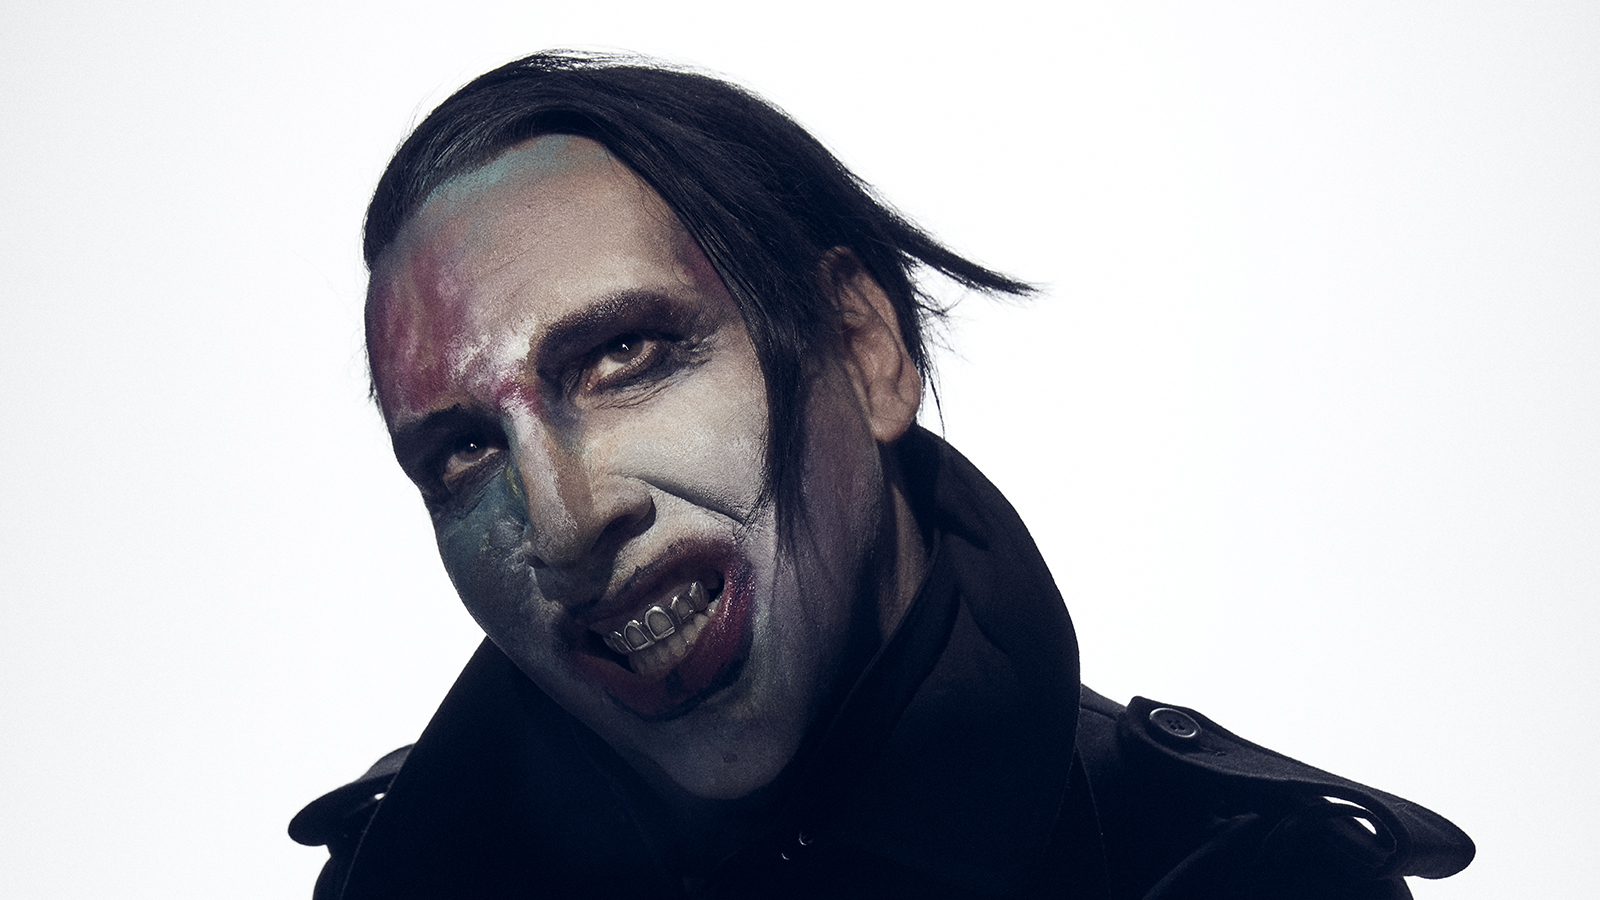 marilyn_manson_2020_travis_shinn.jpg